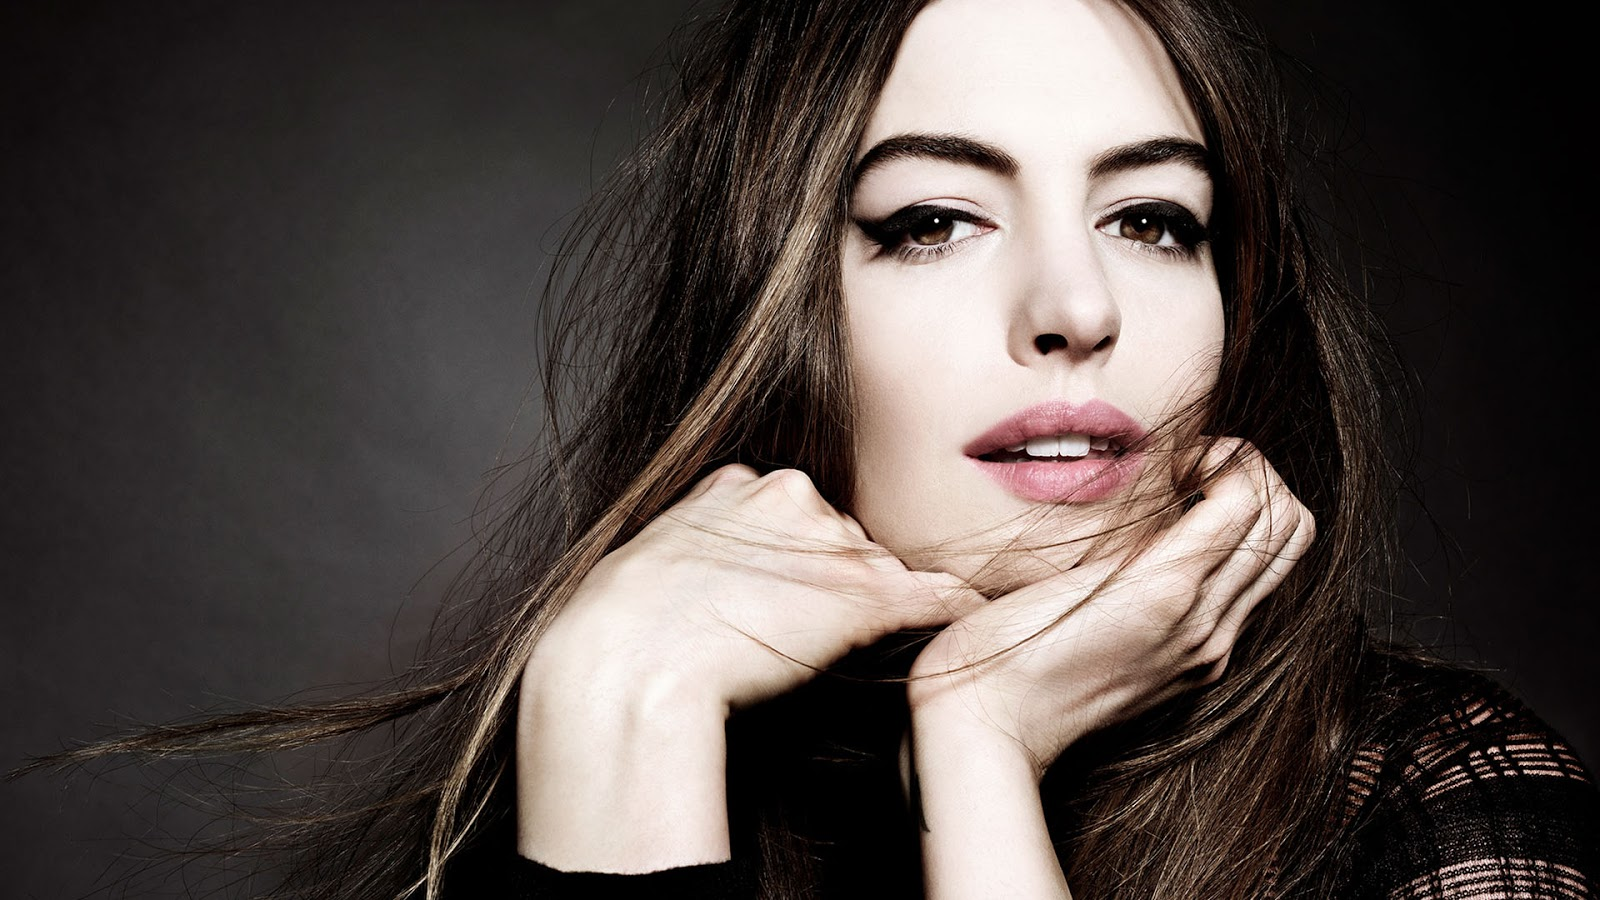 Anne Hathaway HD Images and Wallpapers - Hollywood Actress